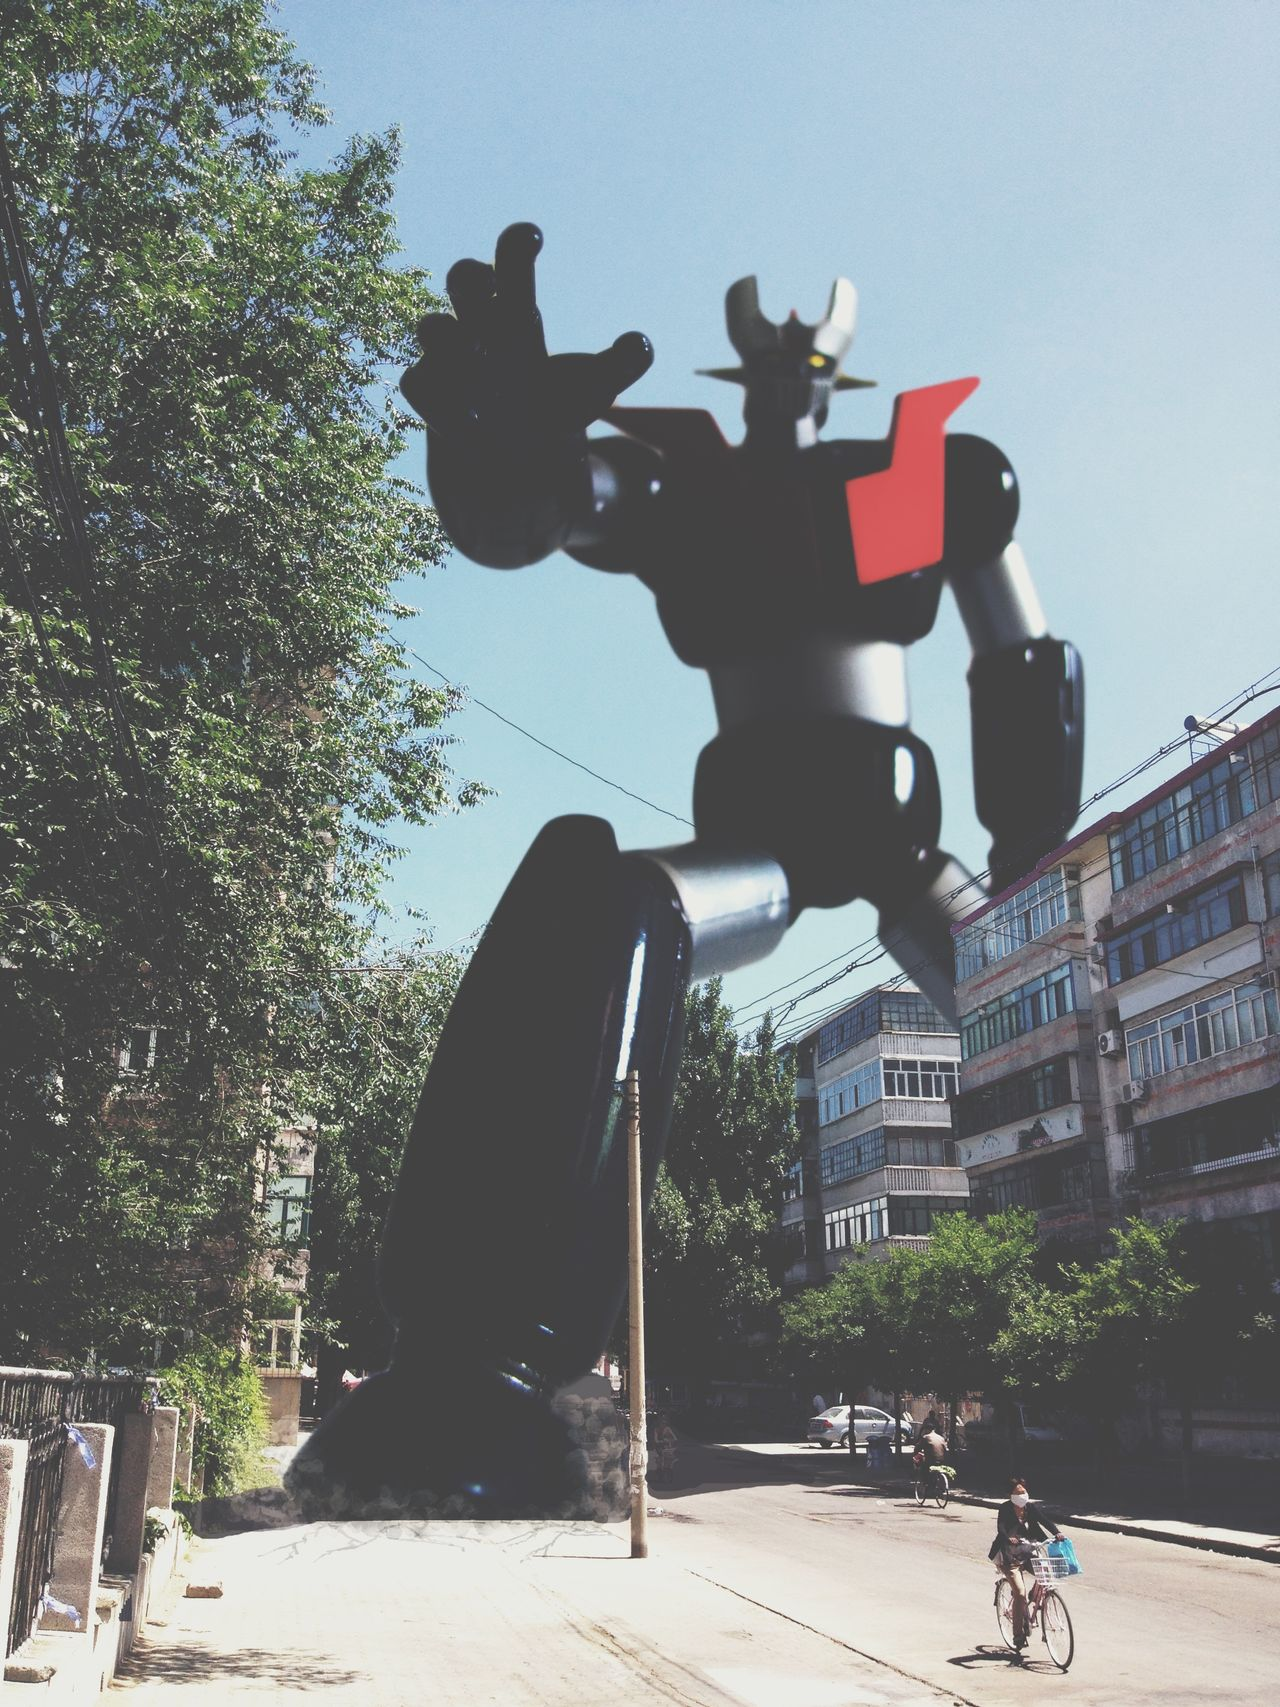 Building Exterior City Largerthanlife Mazinger Z Road Street Toyphotography Toys